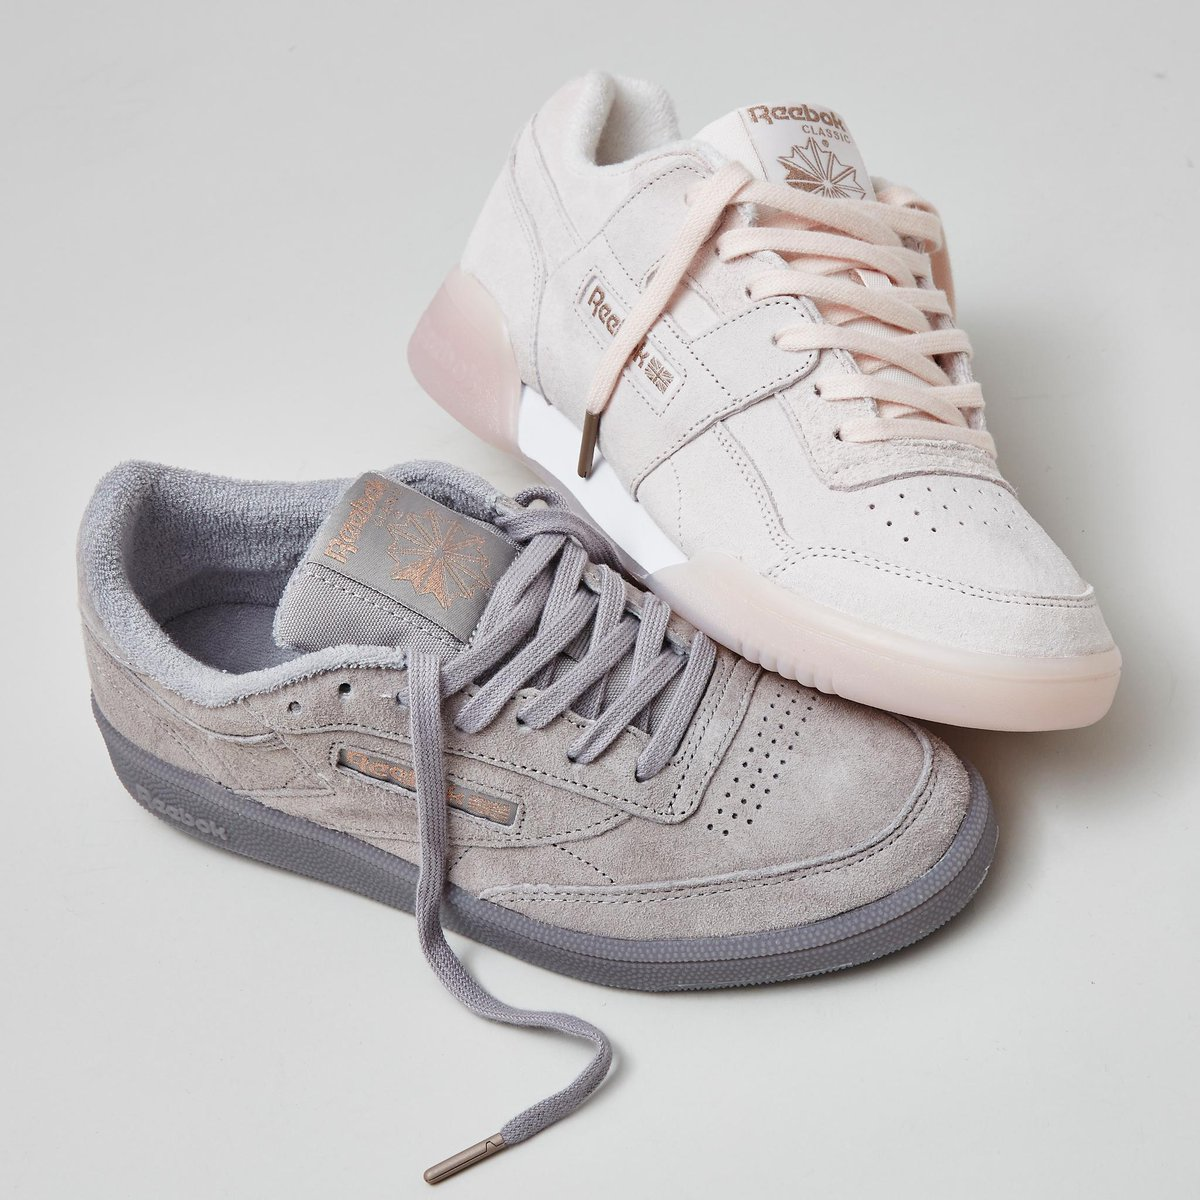 58cf5c5d17fbe4 Whats your favourite-The Club C 85 Trainers in Skull Grey Rose Gold  Exclusive and Reebok Workout Plus Trainers Pale Pink in Rose Gold Exclusive